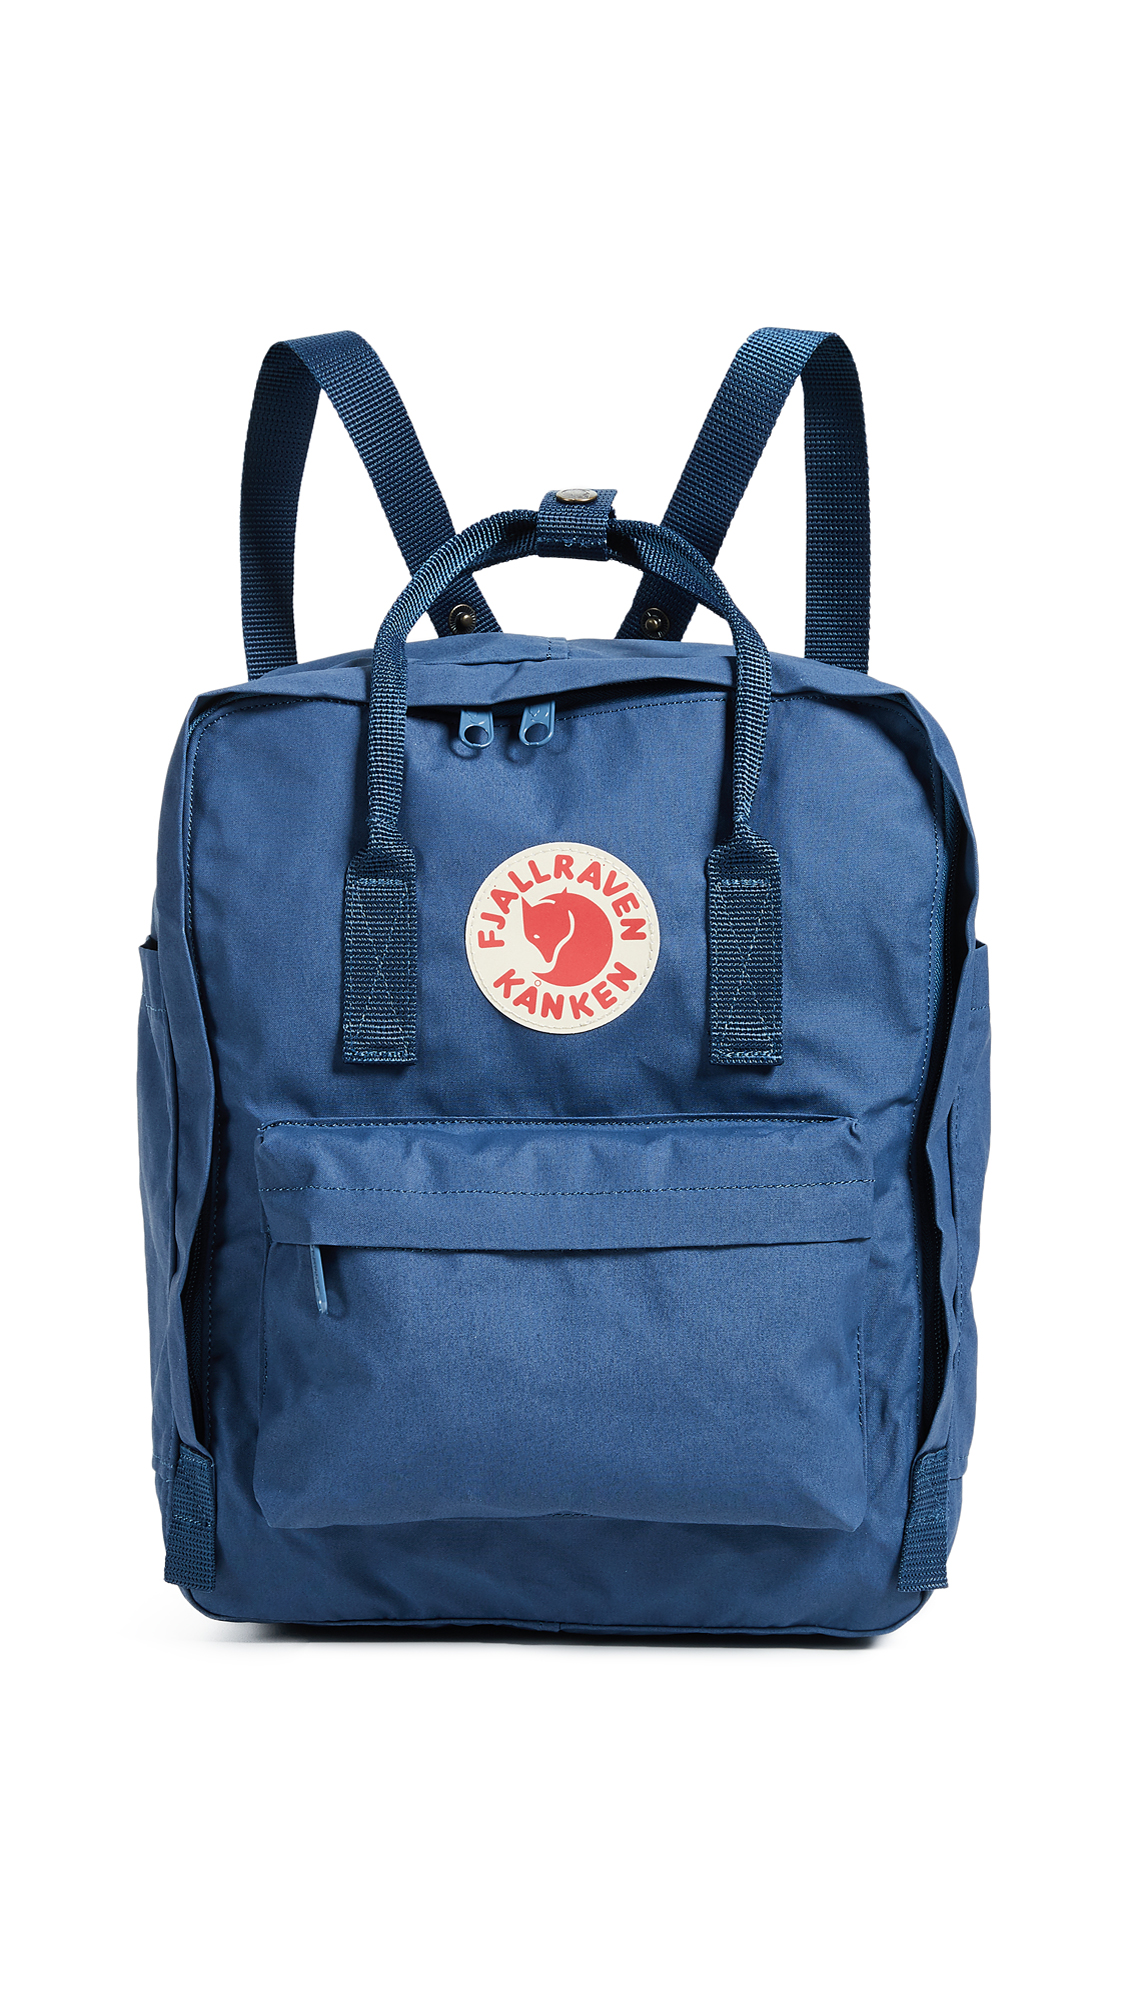 FJALL RAVEN Kanken Backpack in Royal Blue